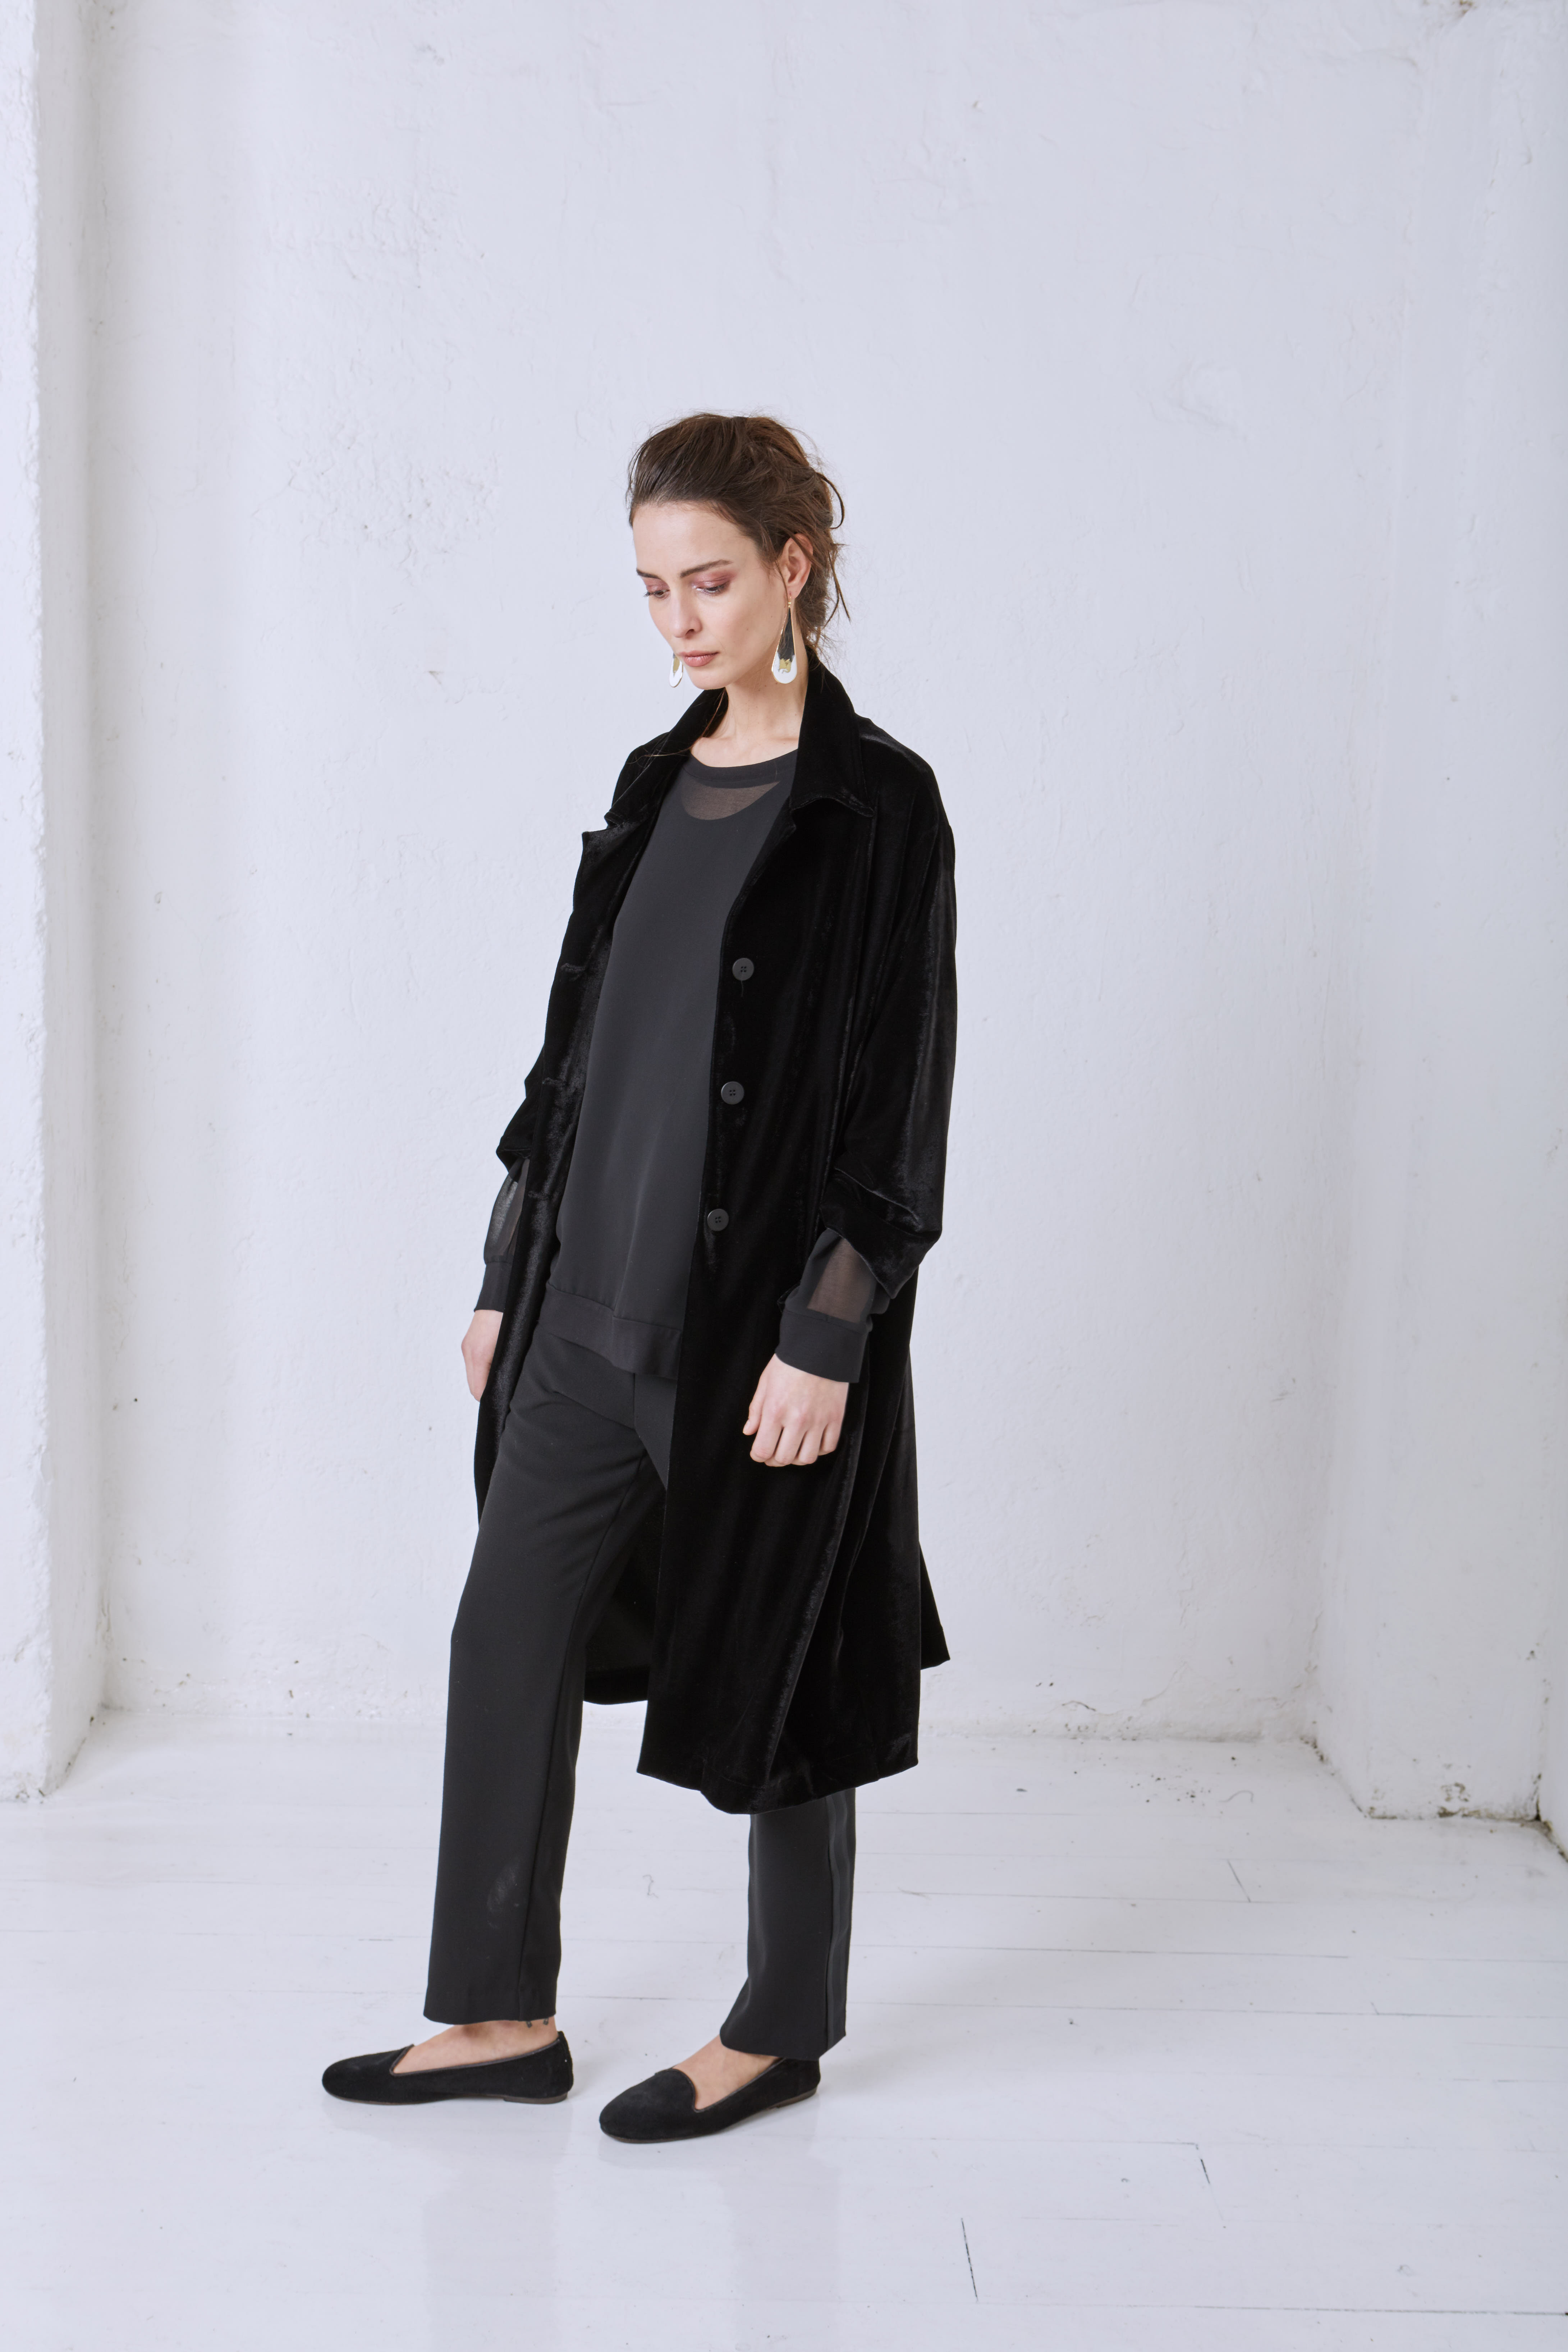 low cost 69872 f06af Martino Midali autunno inverno 2017-2018 - Fotogallery